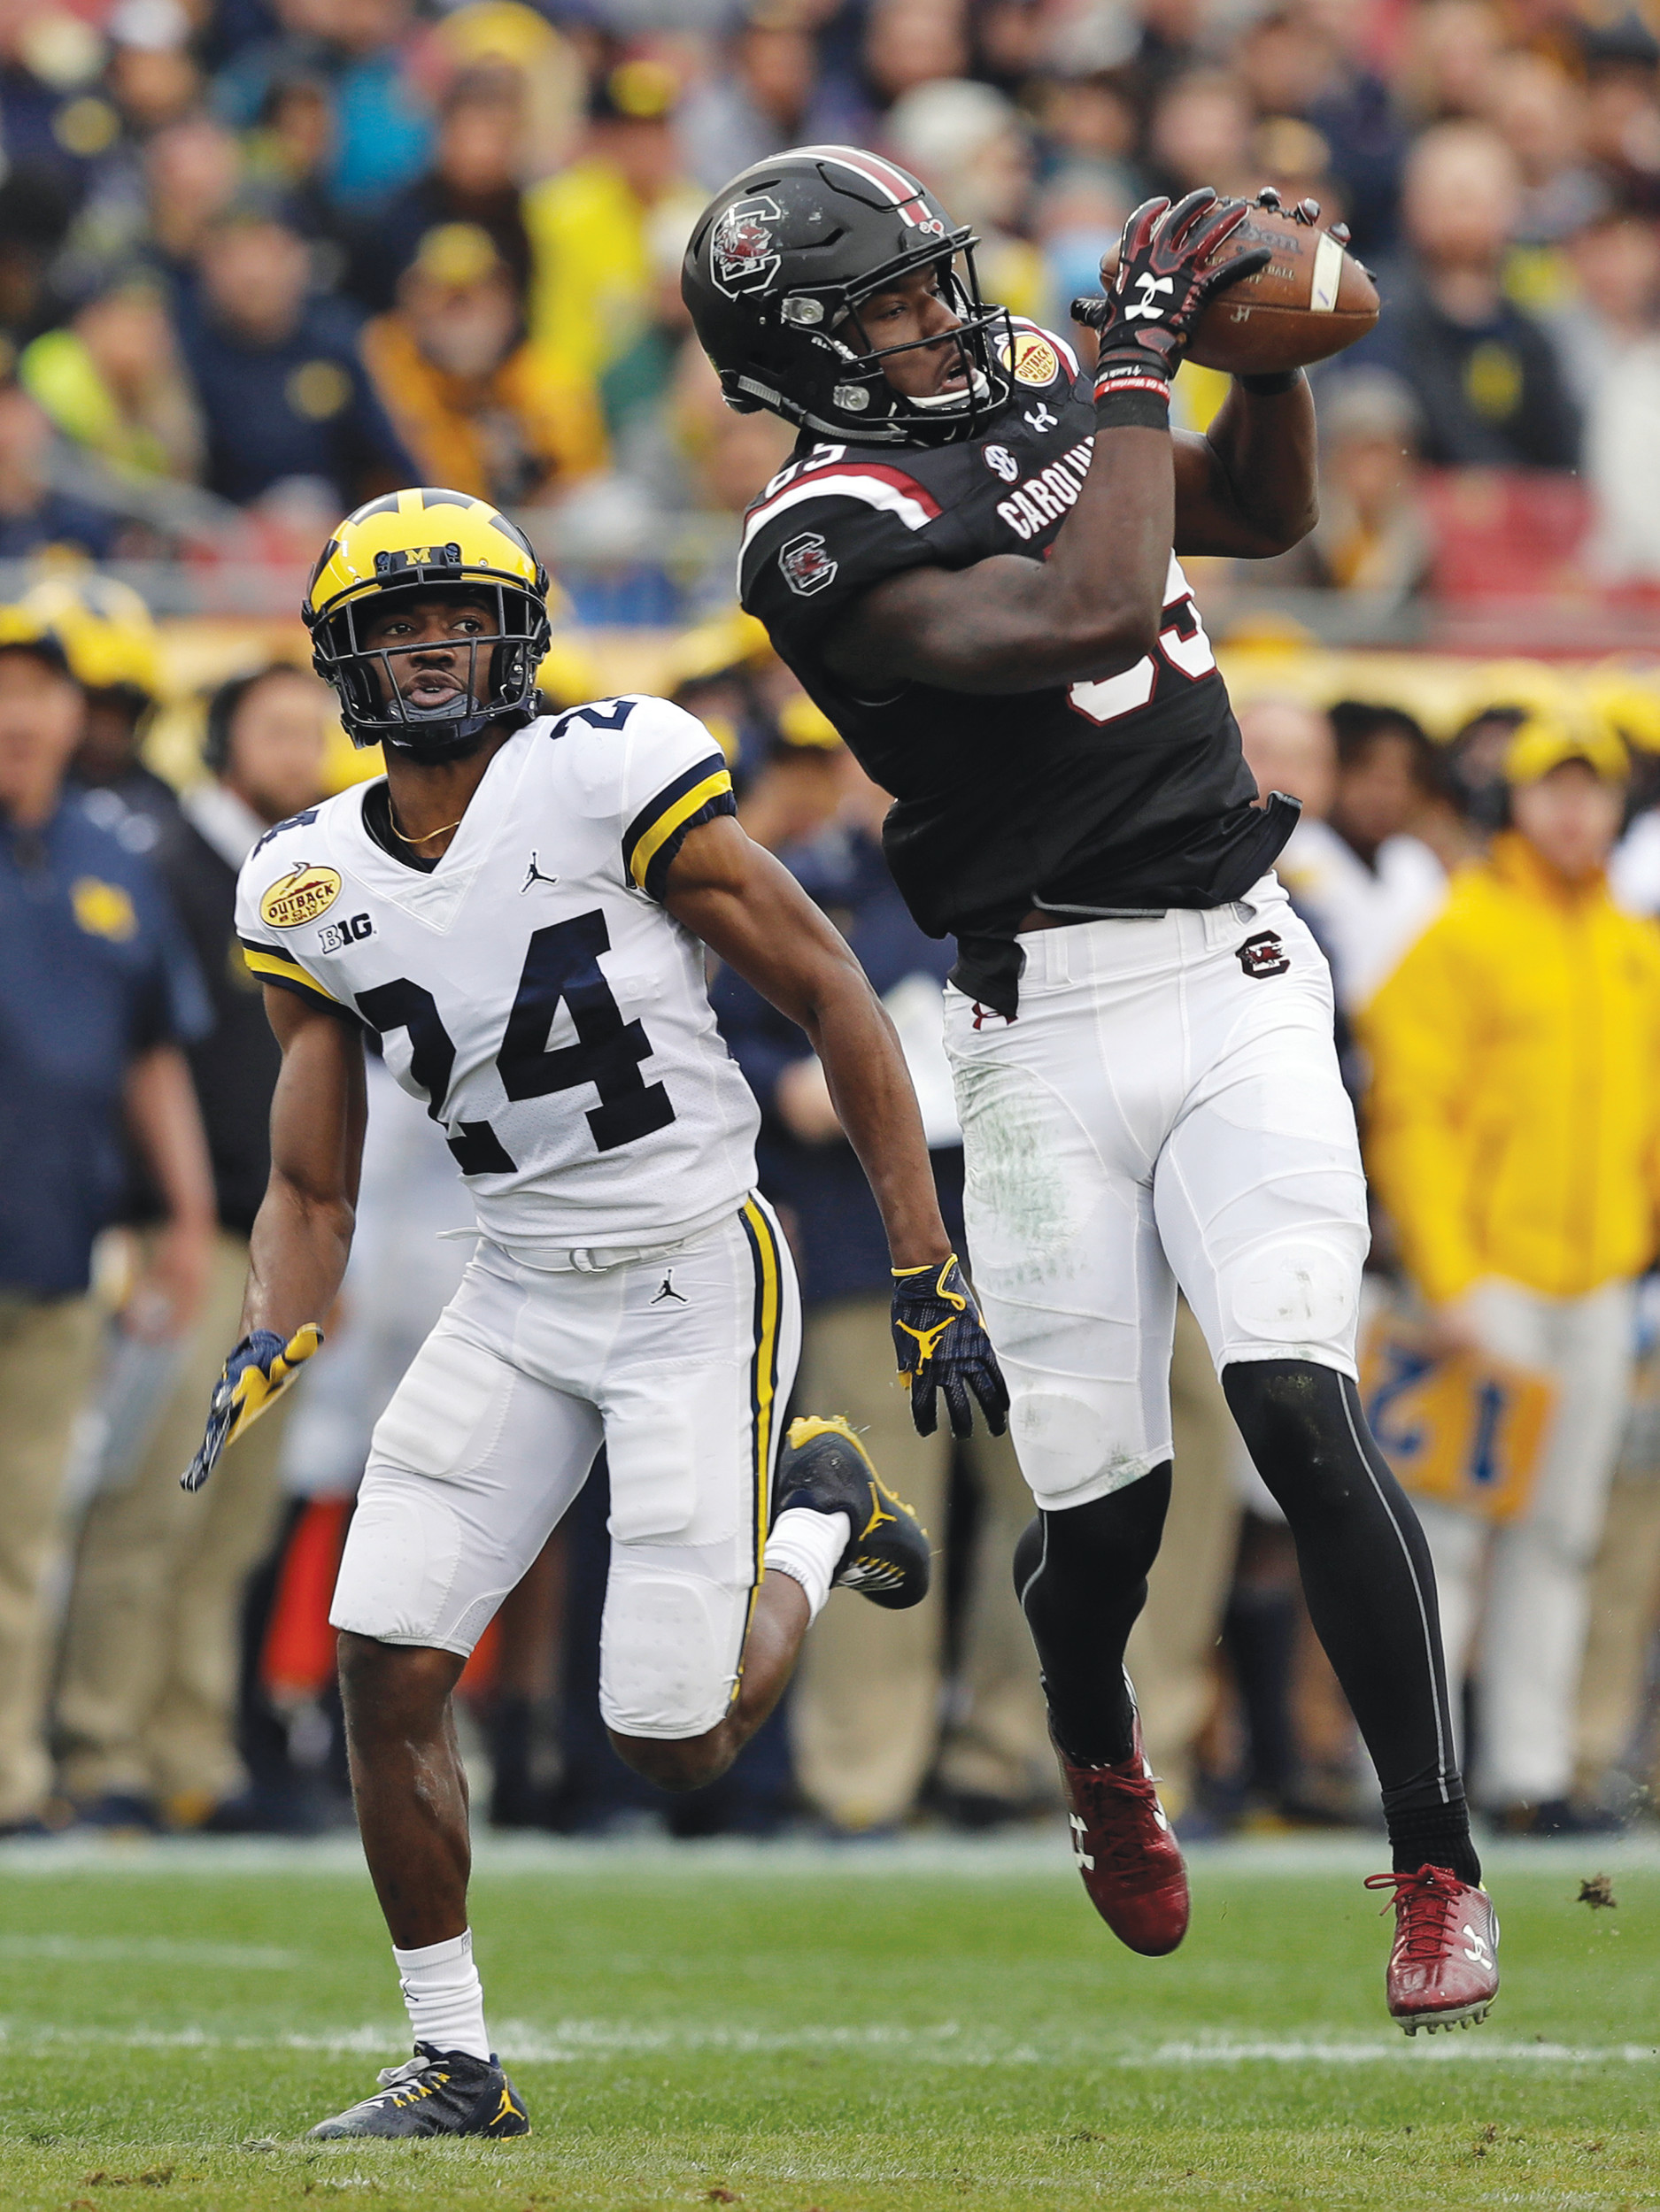 South Carolina wide receiver Bryan Edwards (89) pulls in a pass in front of Michigan defensive back Lavert Hill (24) during the Gamecocks' 26-19 victory in the Outback Bowl on Monday in Tampa, Florida.